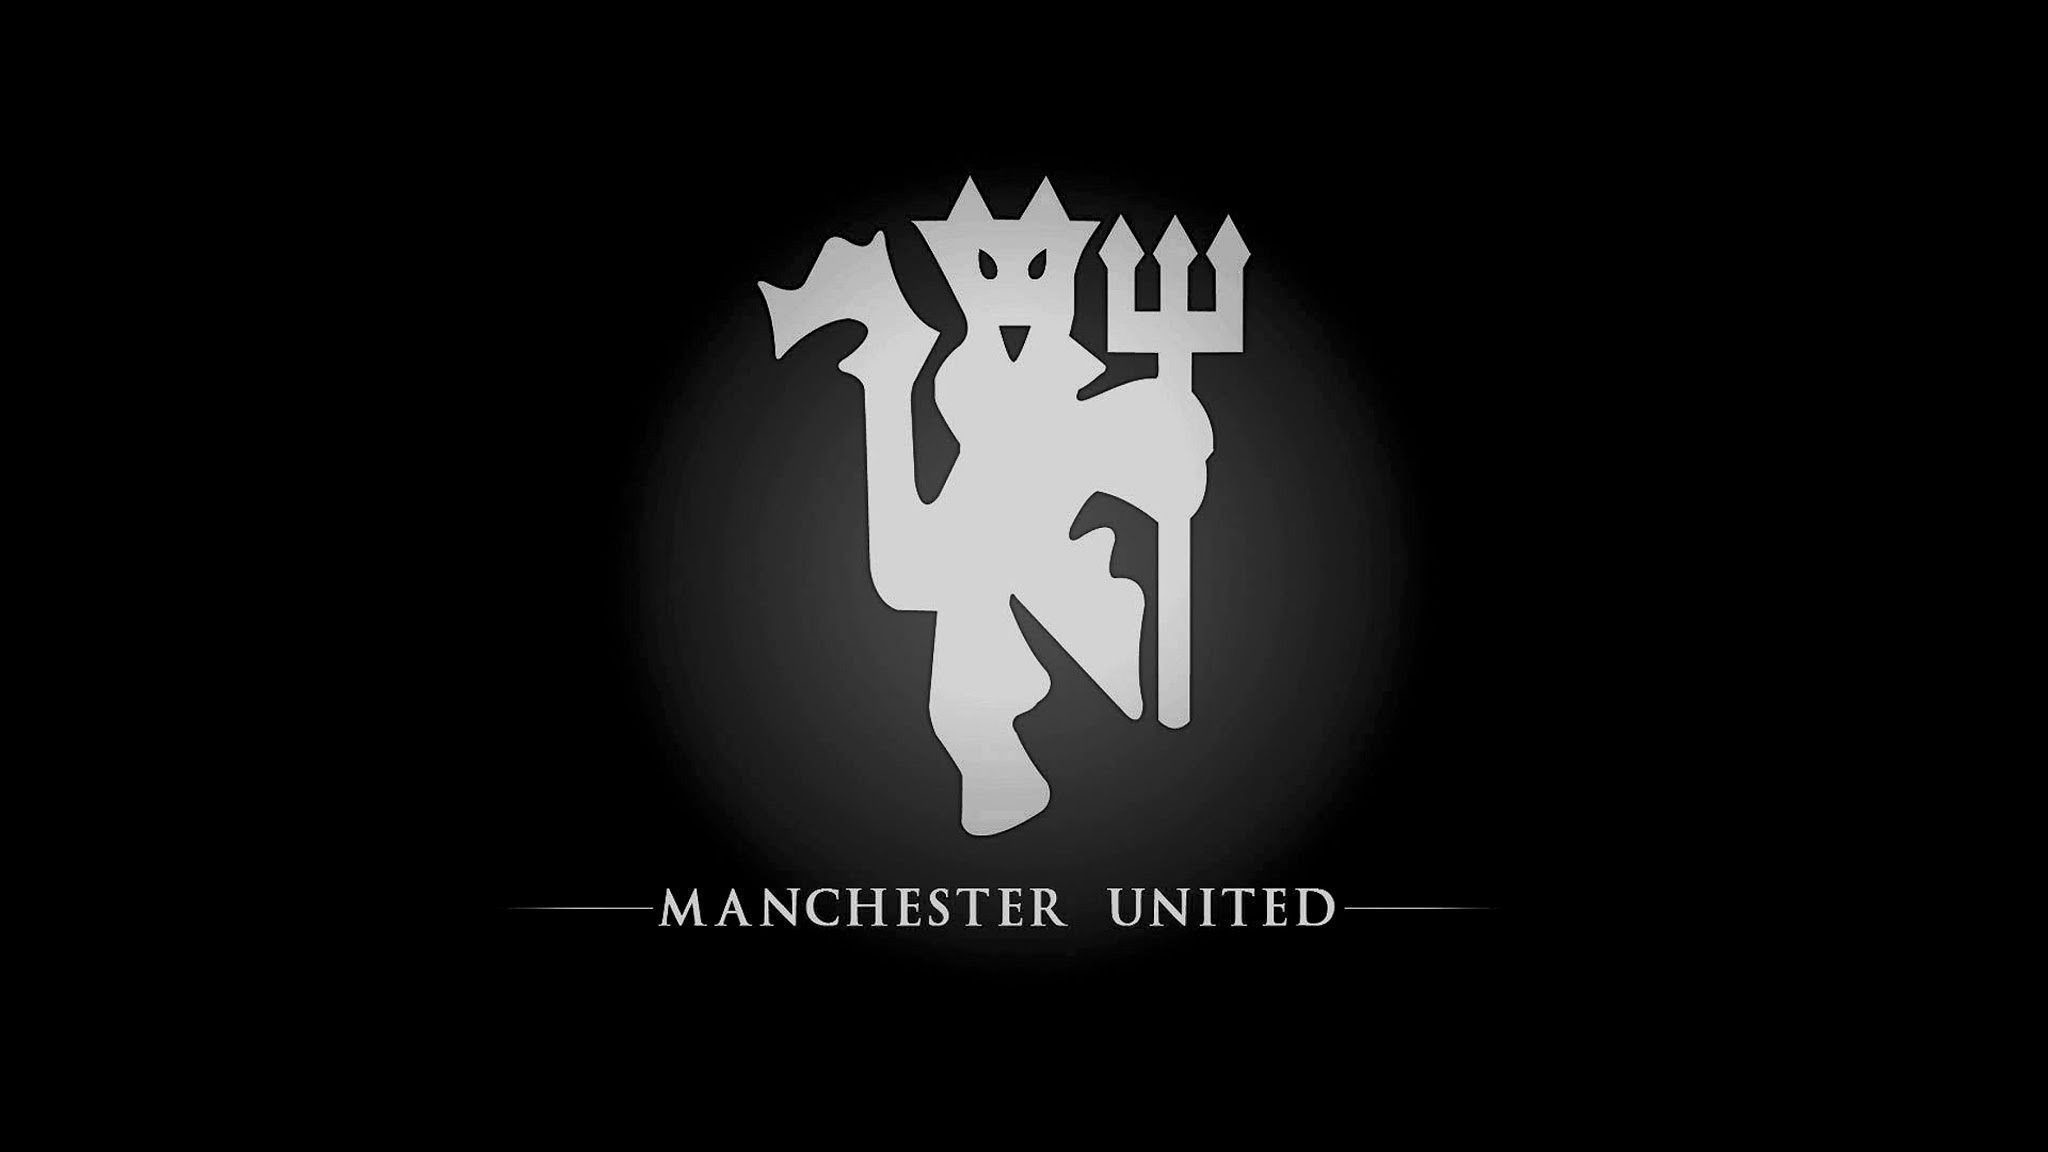 manchester united logo wallpaper 62 pictures manchester united logo wallpaper 62